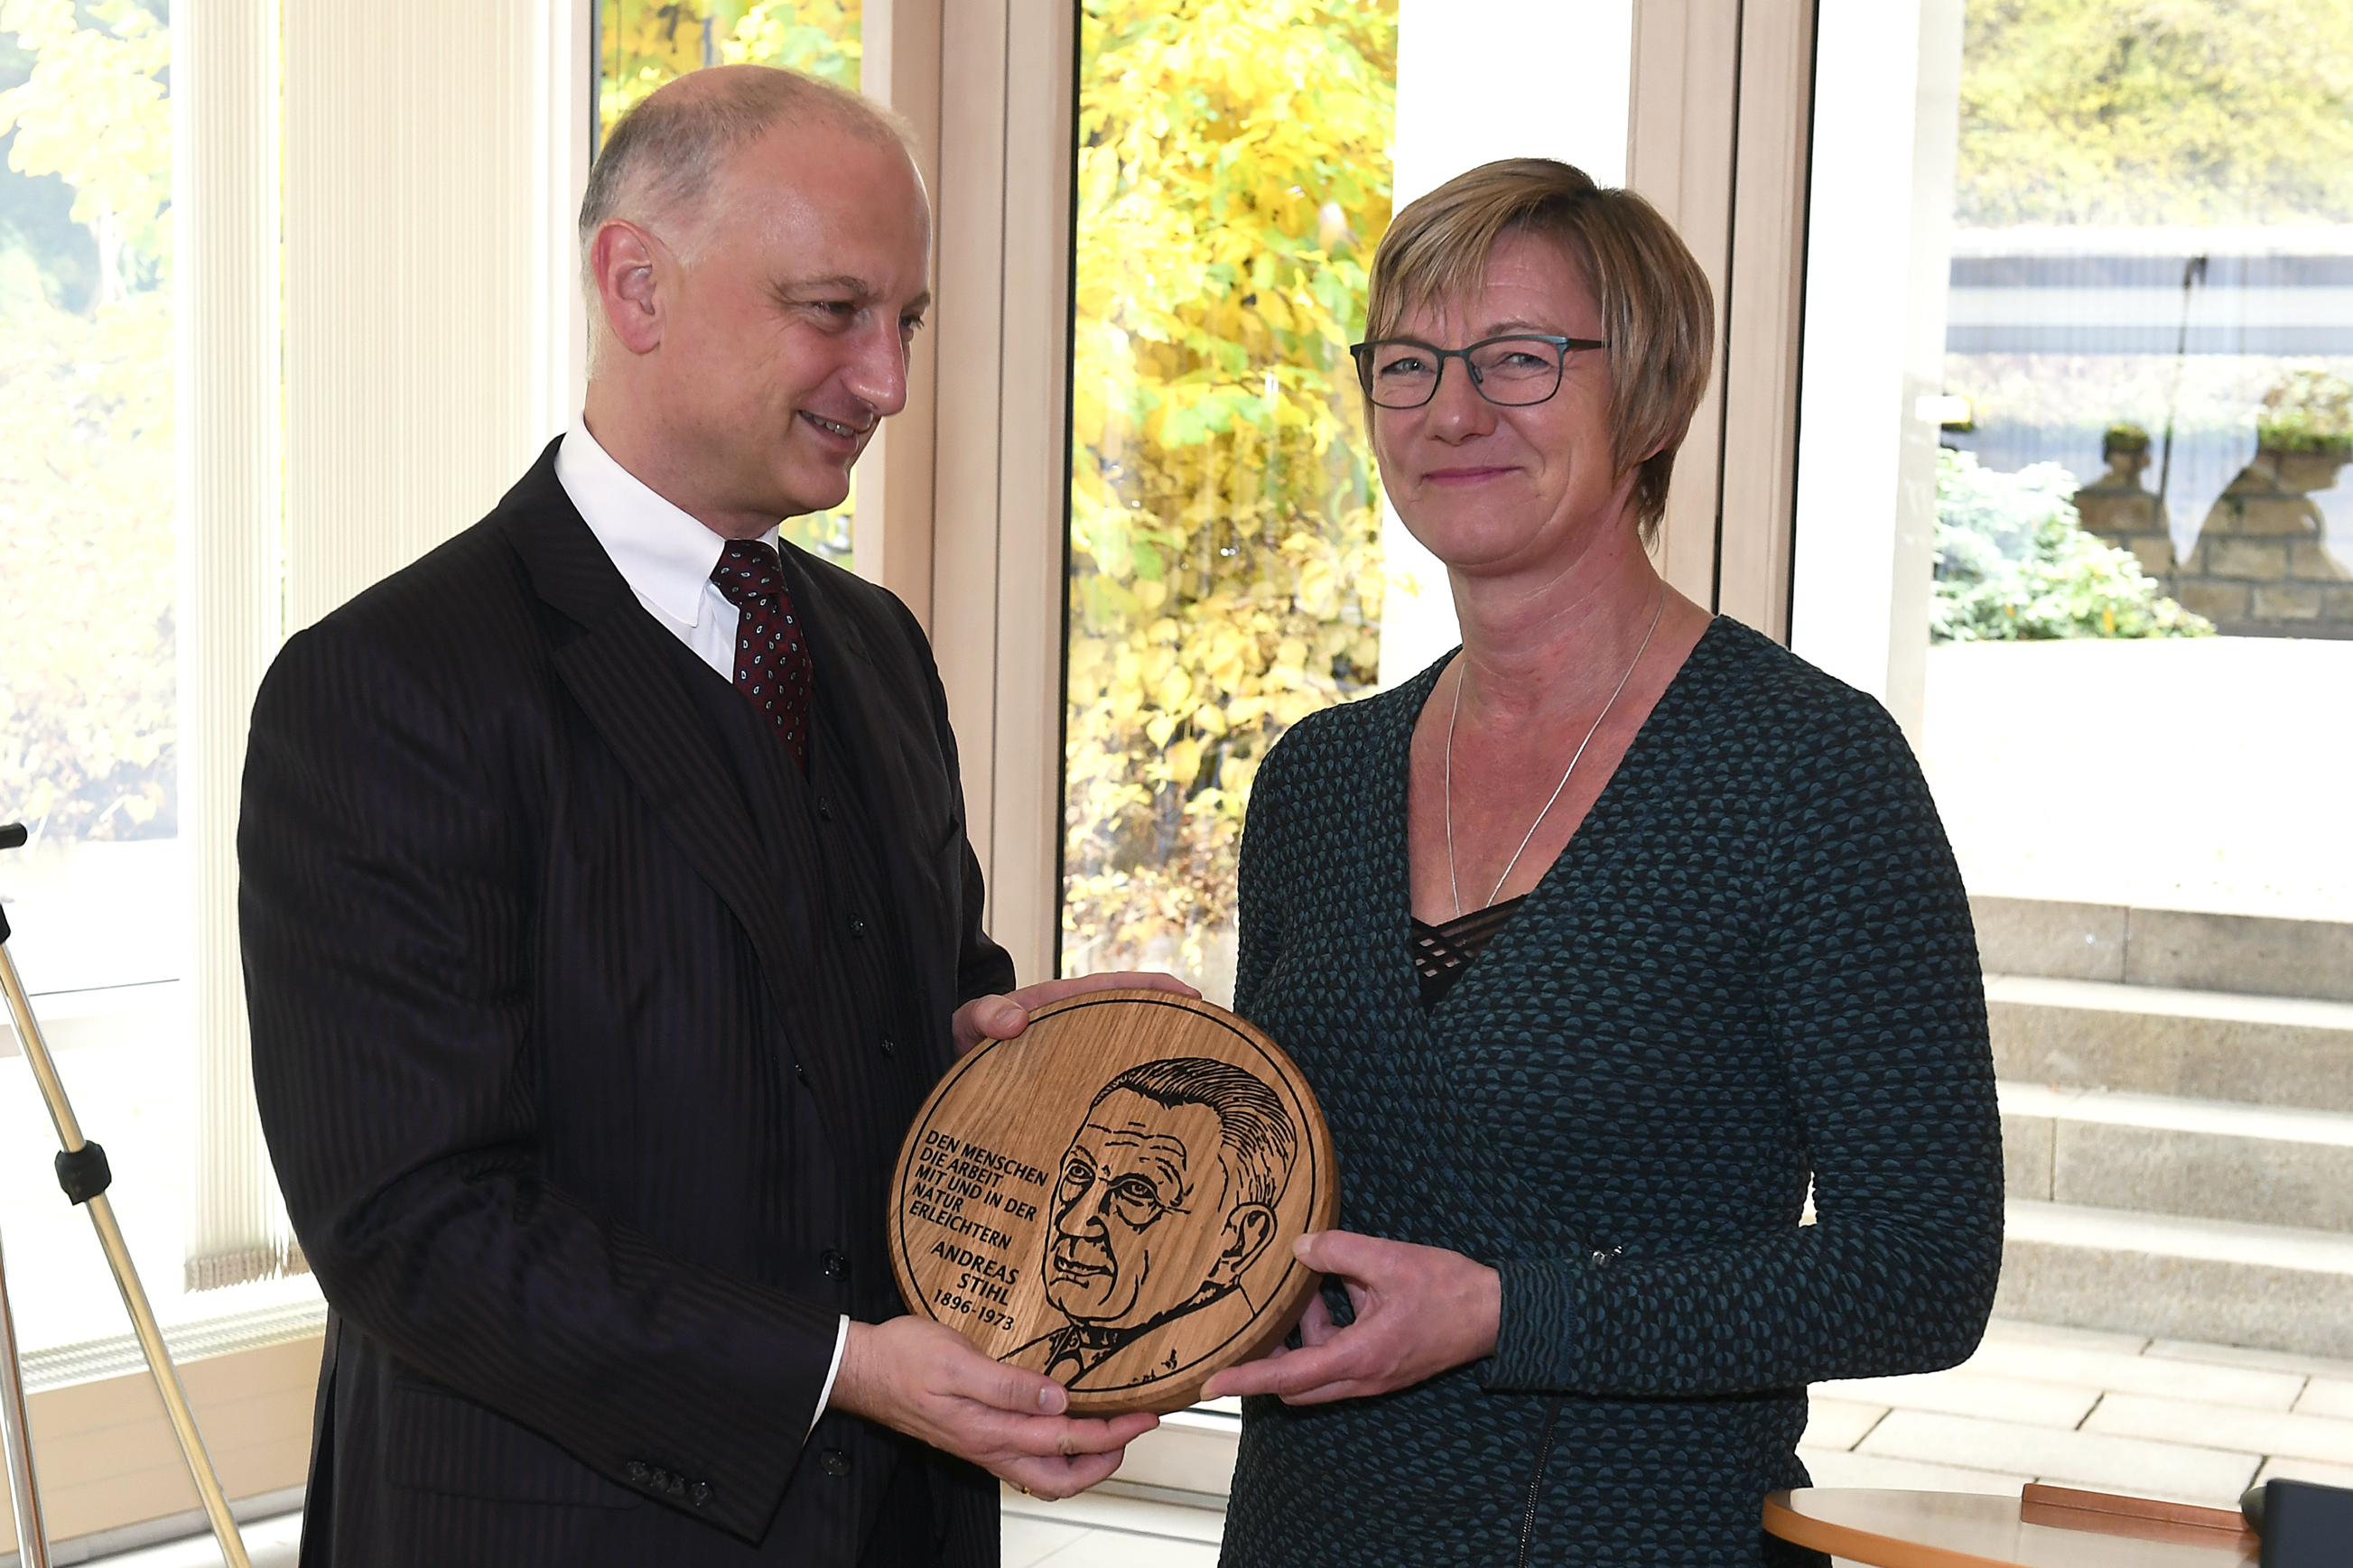 Company founder Andreas Stihl honored with art medal | STIHL